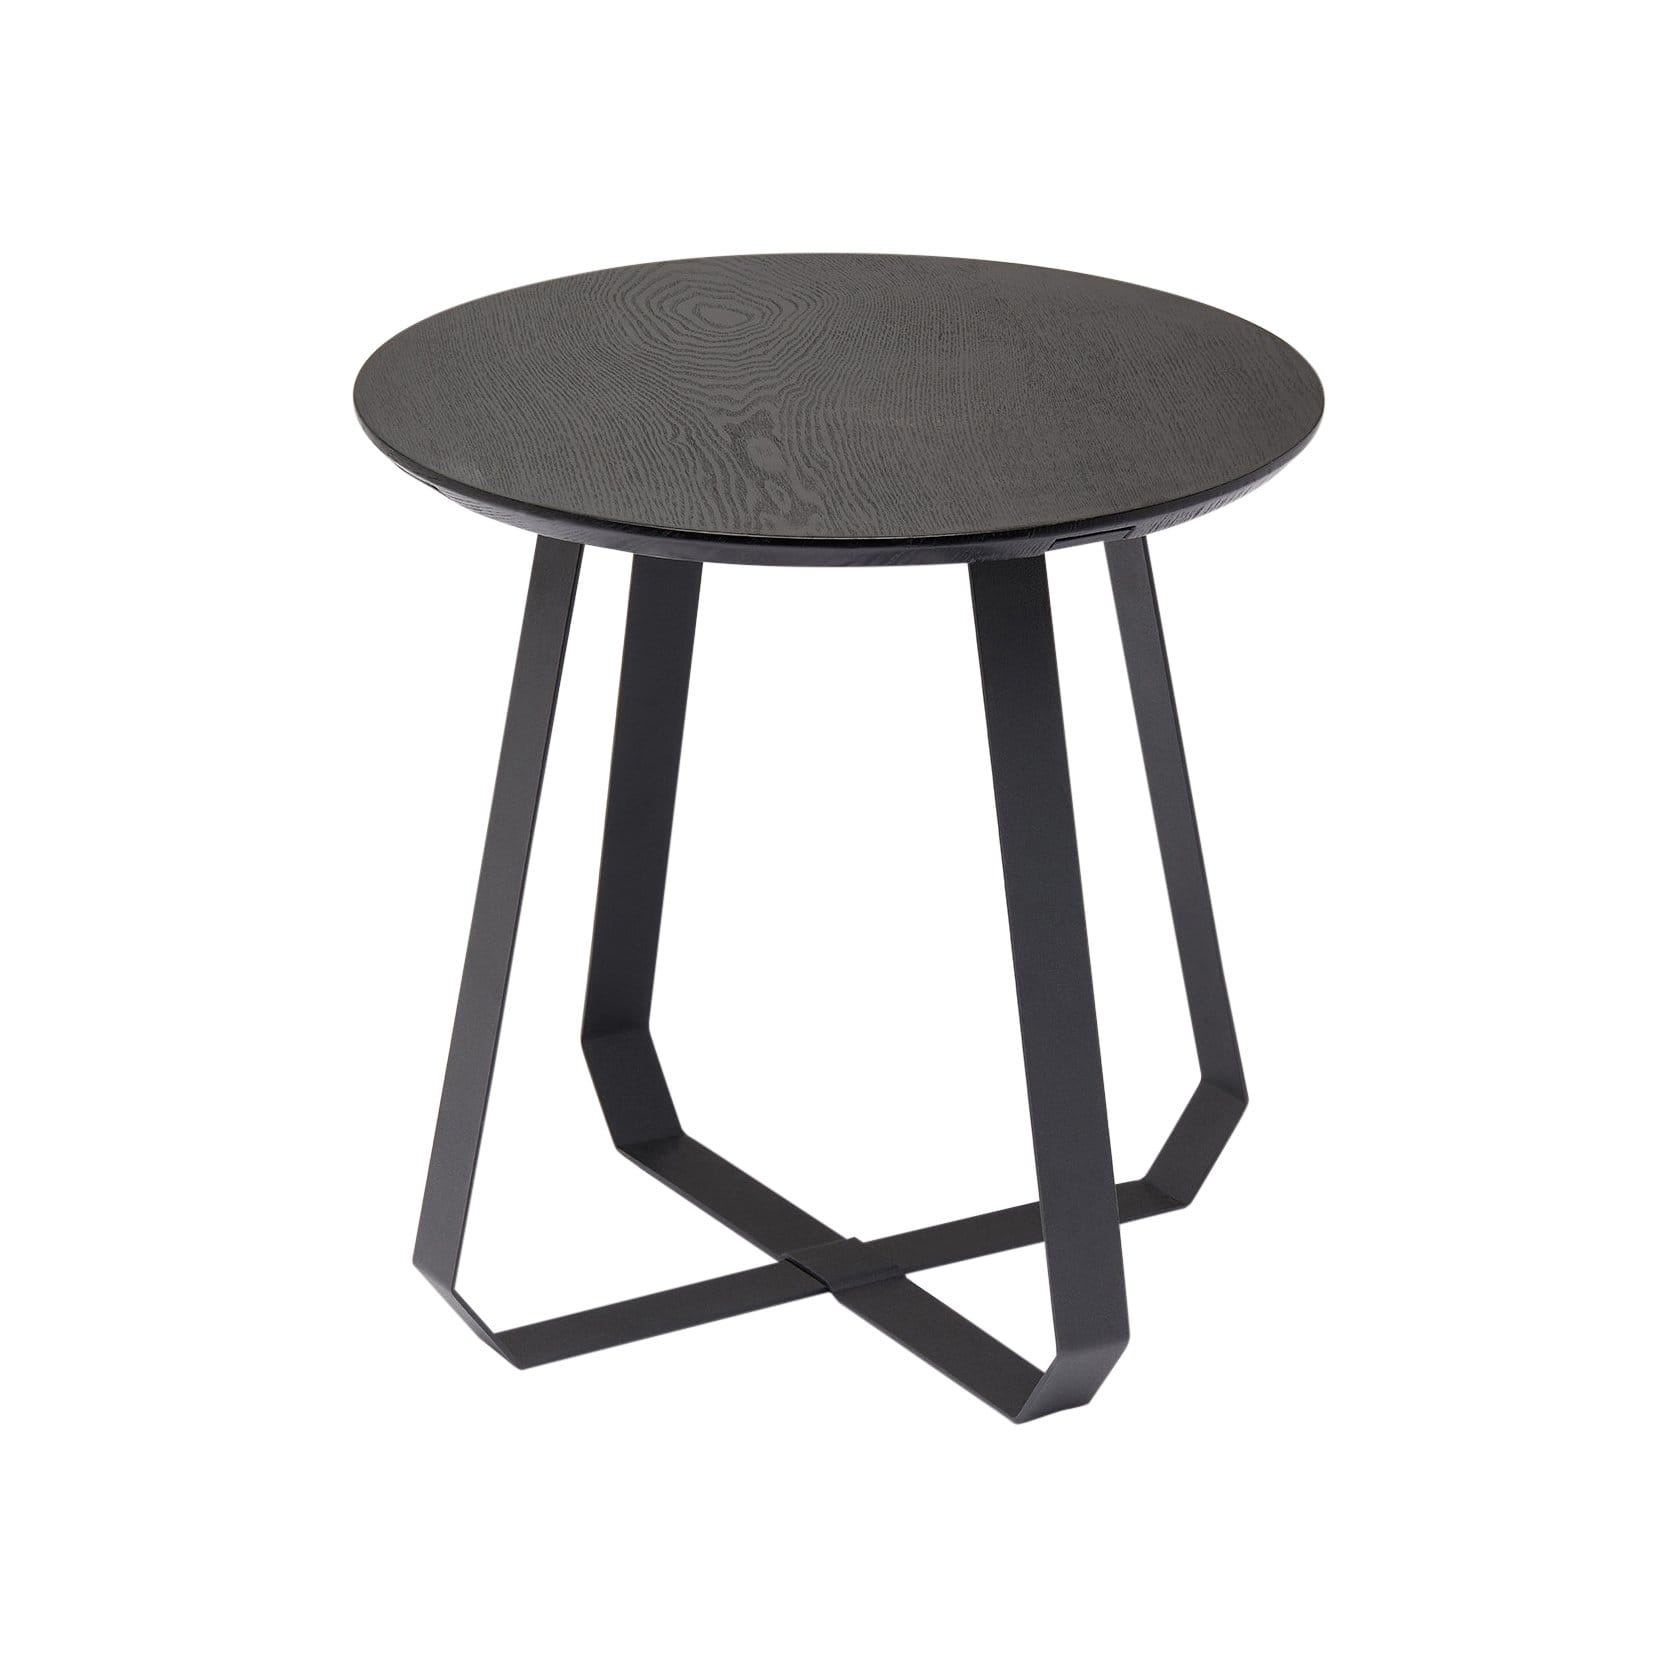 Puik Design Furniture Black Shunan Side Table